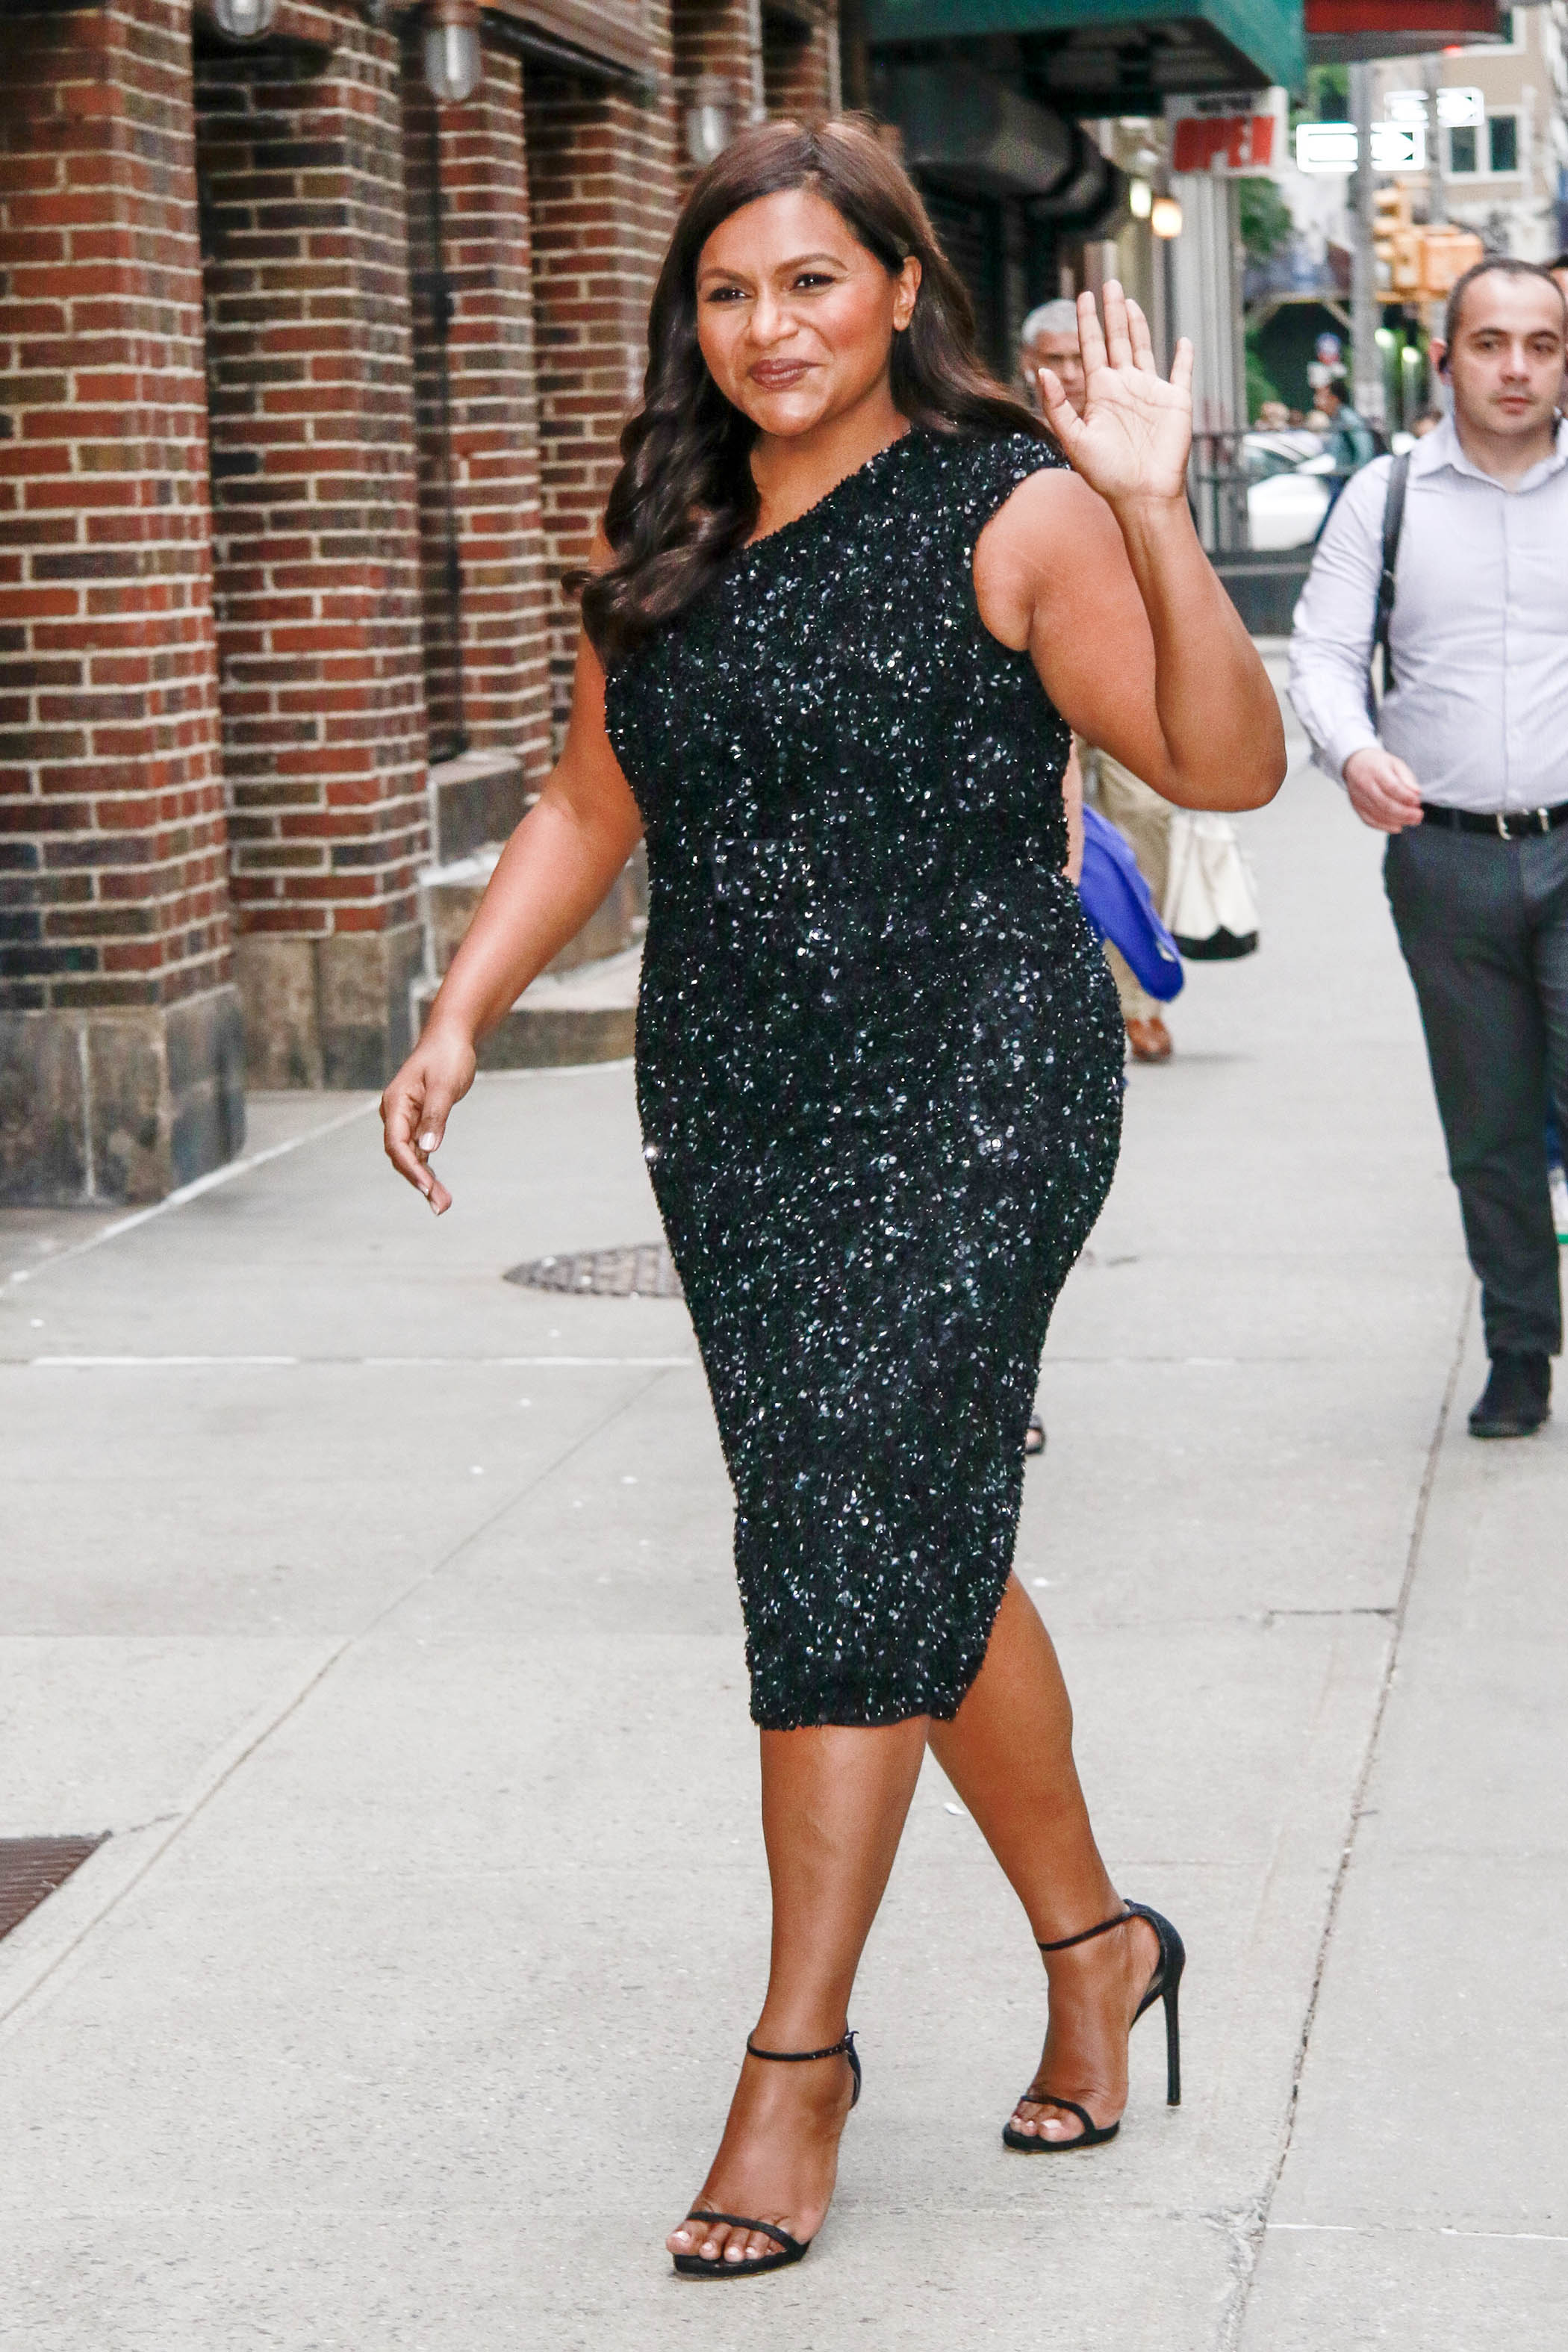 Mindy Kaling Continues Promoting Late Night Cutely Go Fug Yourself